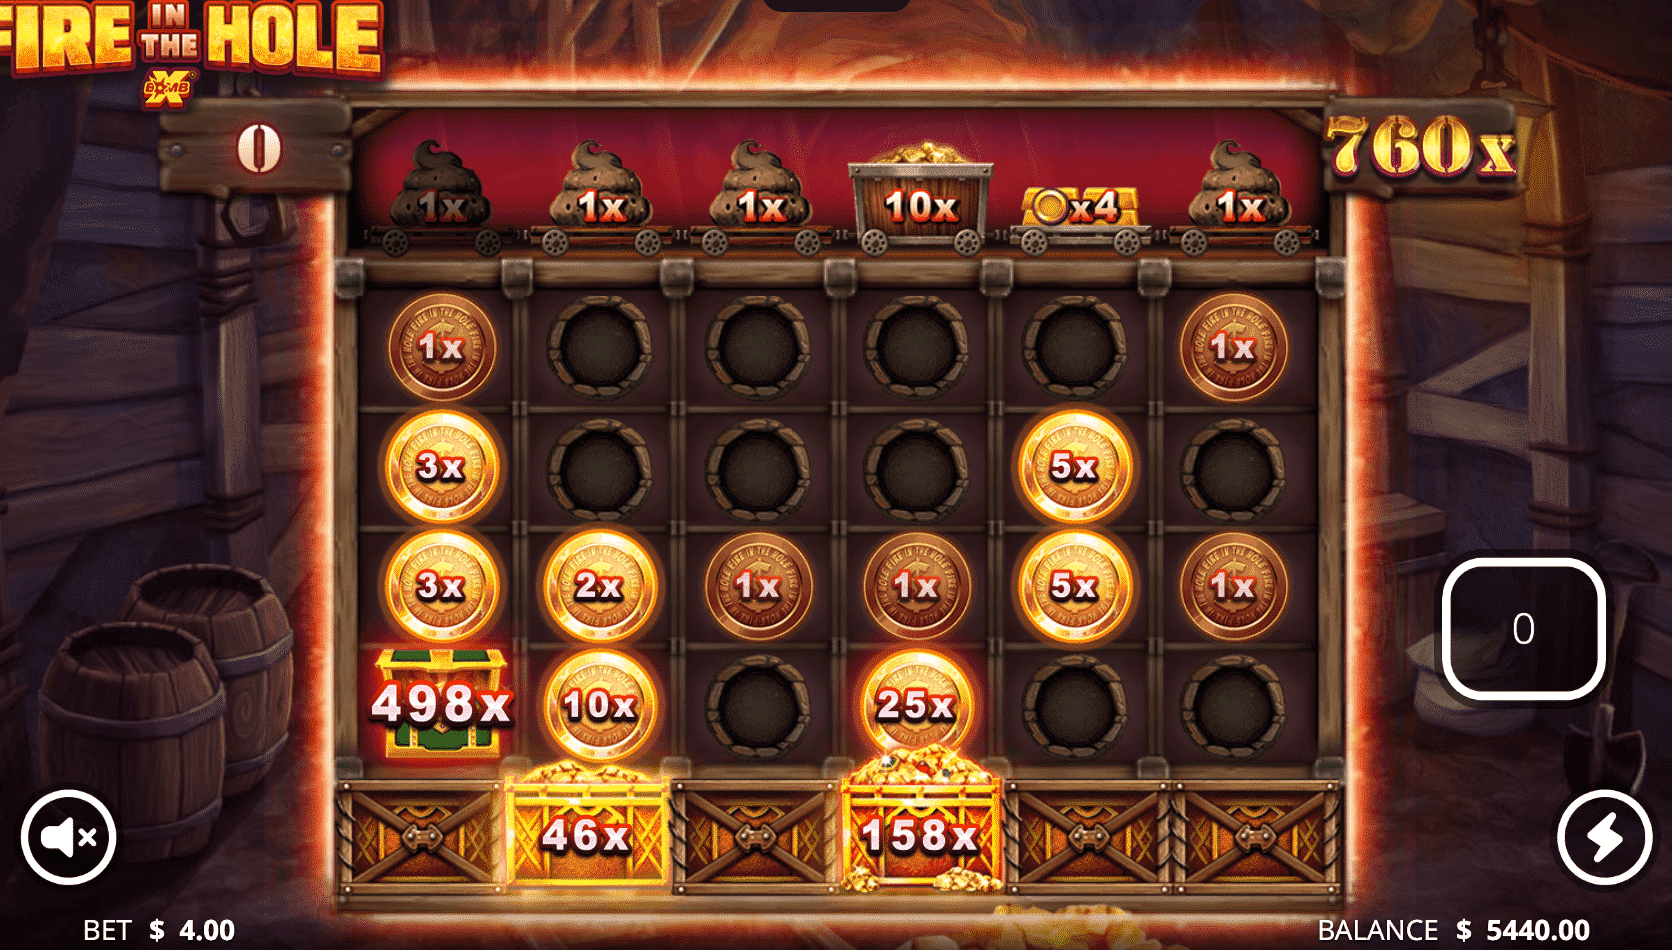 Fire In The Hole Bonus Game